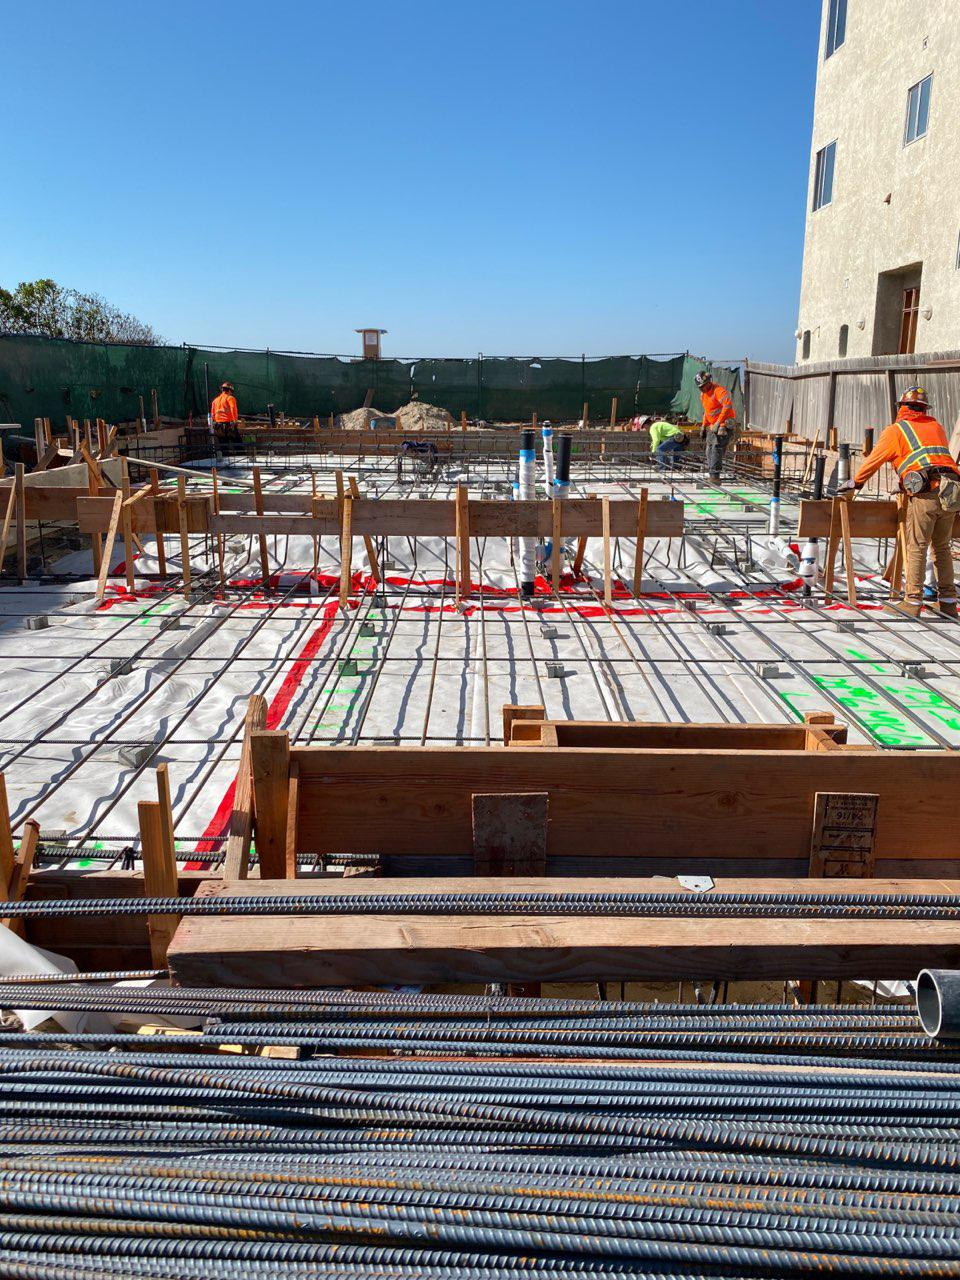 Concrete Forming, Rebar Installation, Moment Frame Bolts Installation, Pouring Concrete